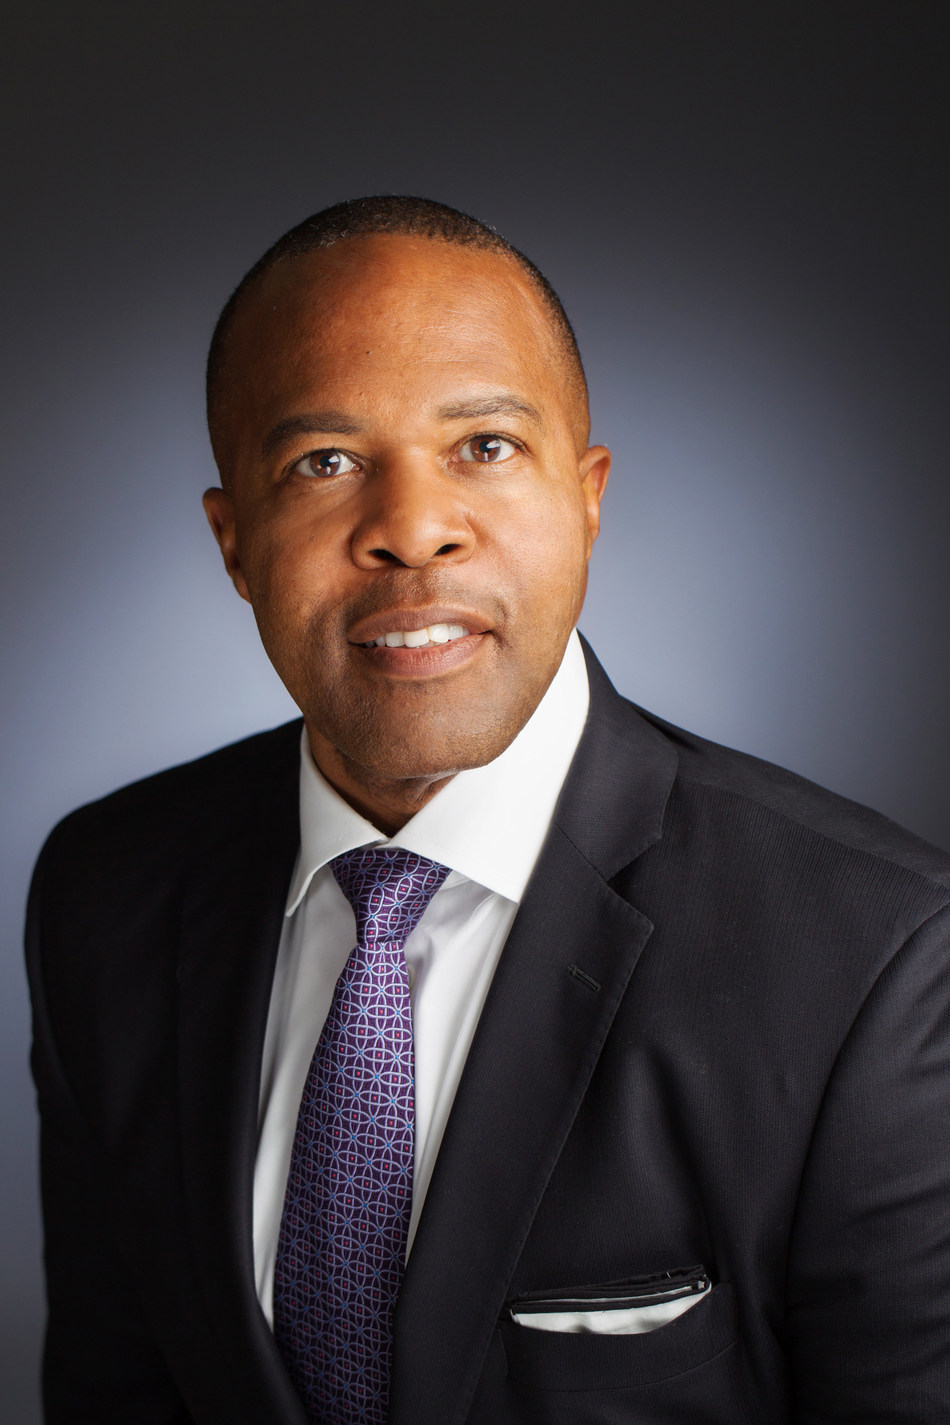 Anthony White, Managing Director and South Bay Regional Manager, Commercial Banking - Union Bank